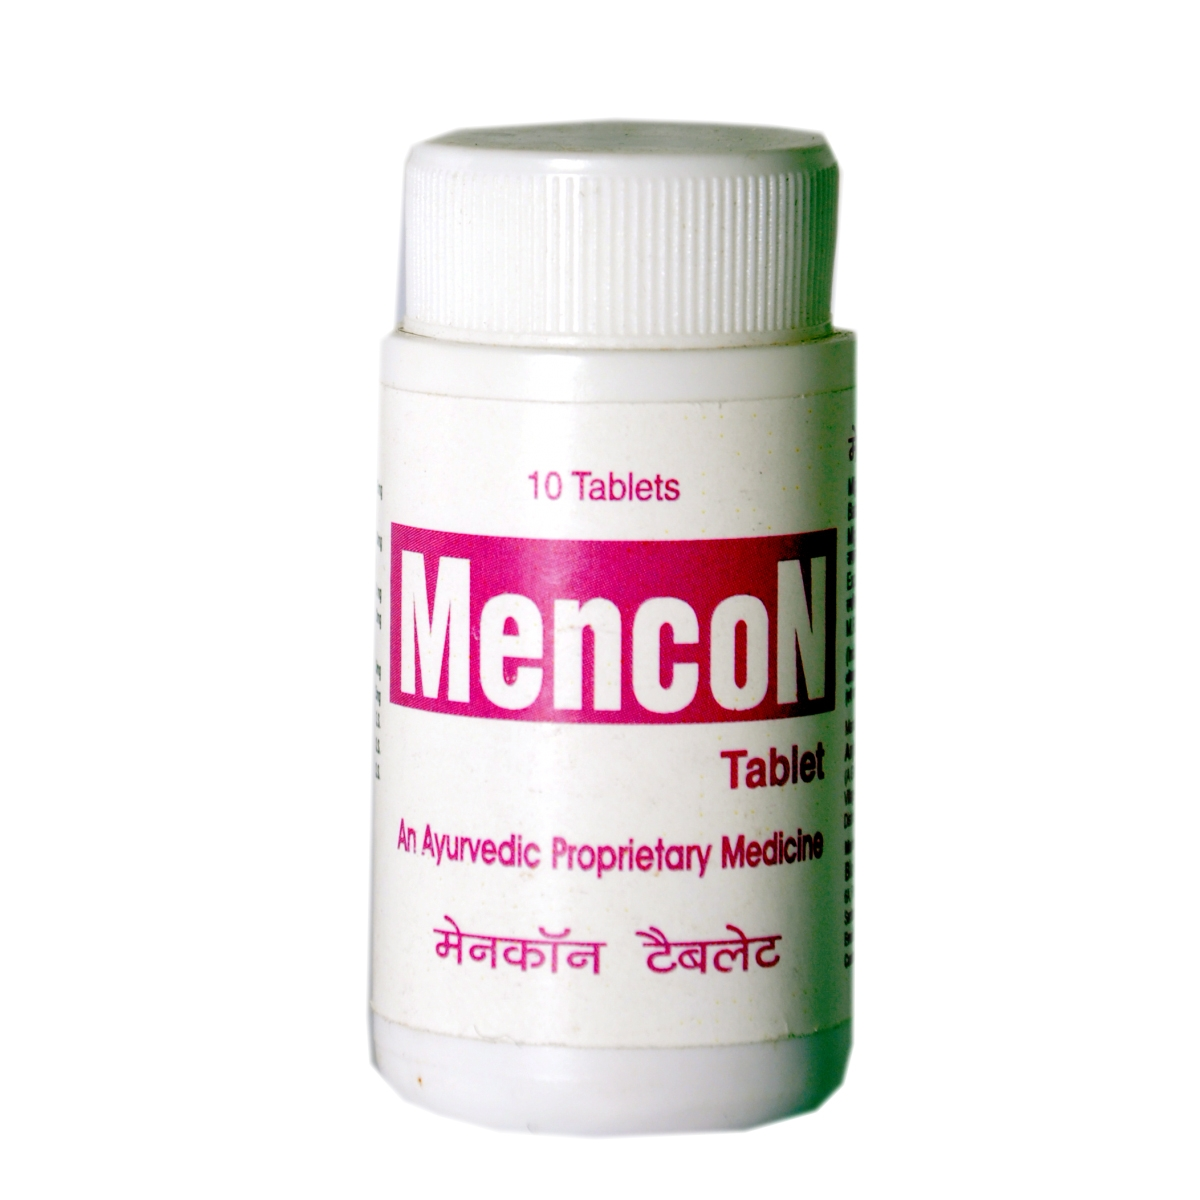 Mencon Tablet In Farrukhabad